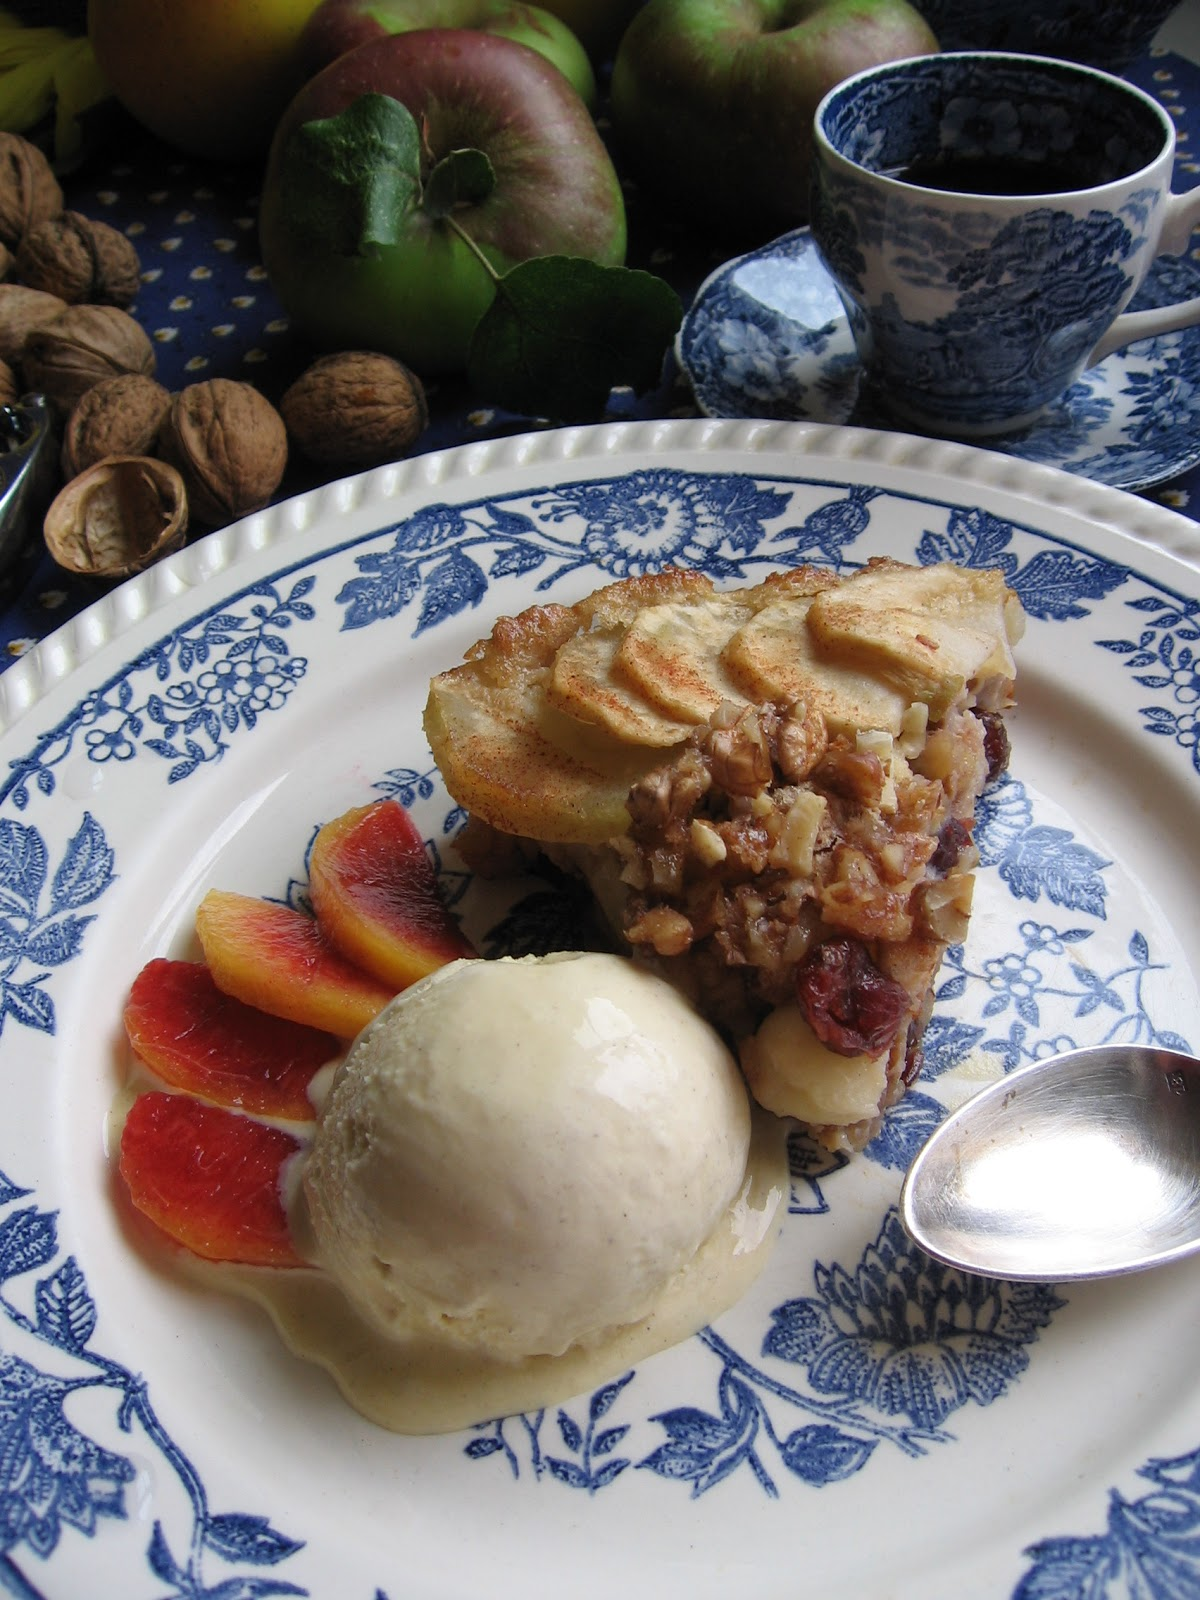 I-Lost in Austen: Cinnamon – Apple Walnut Torte